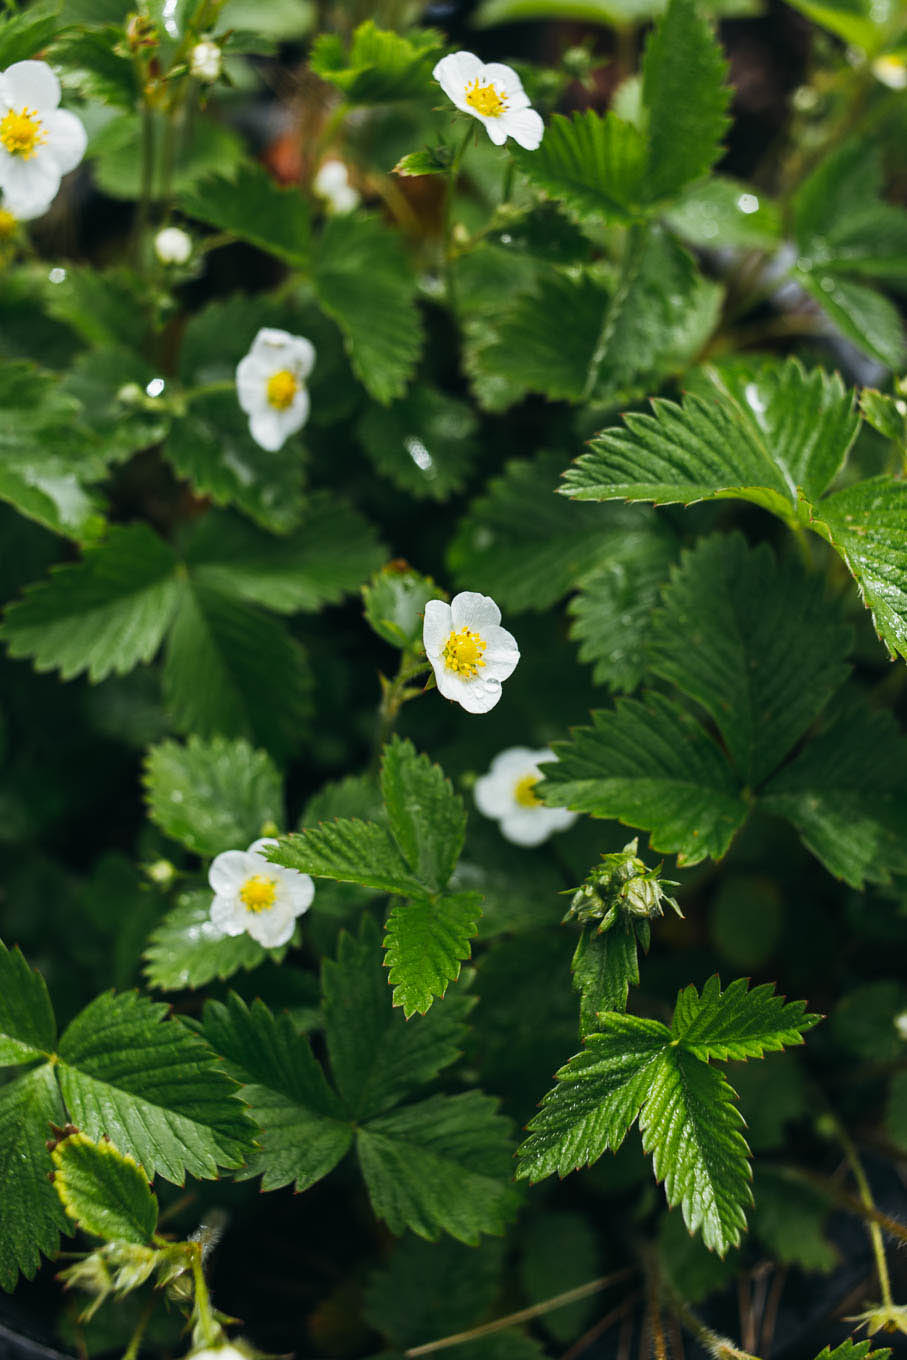 Strawberry plants with flowers.